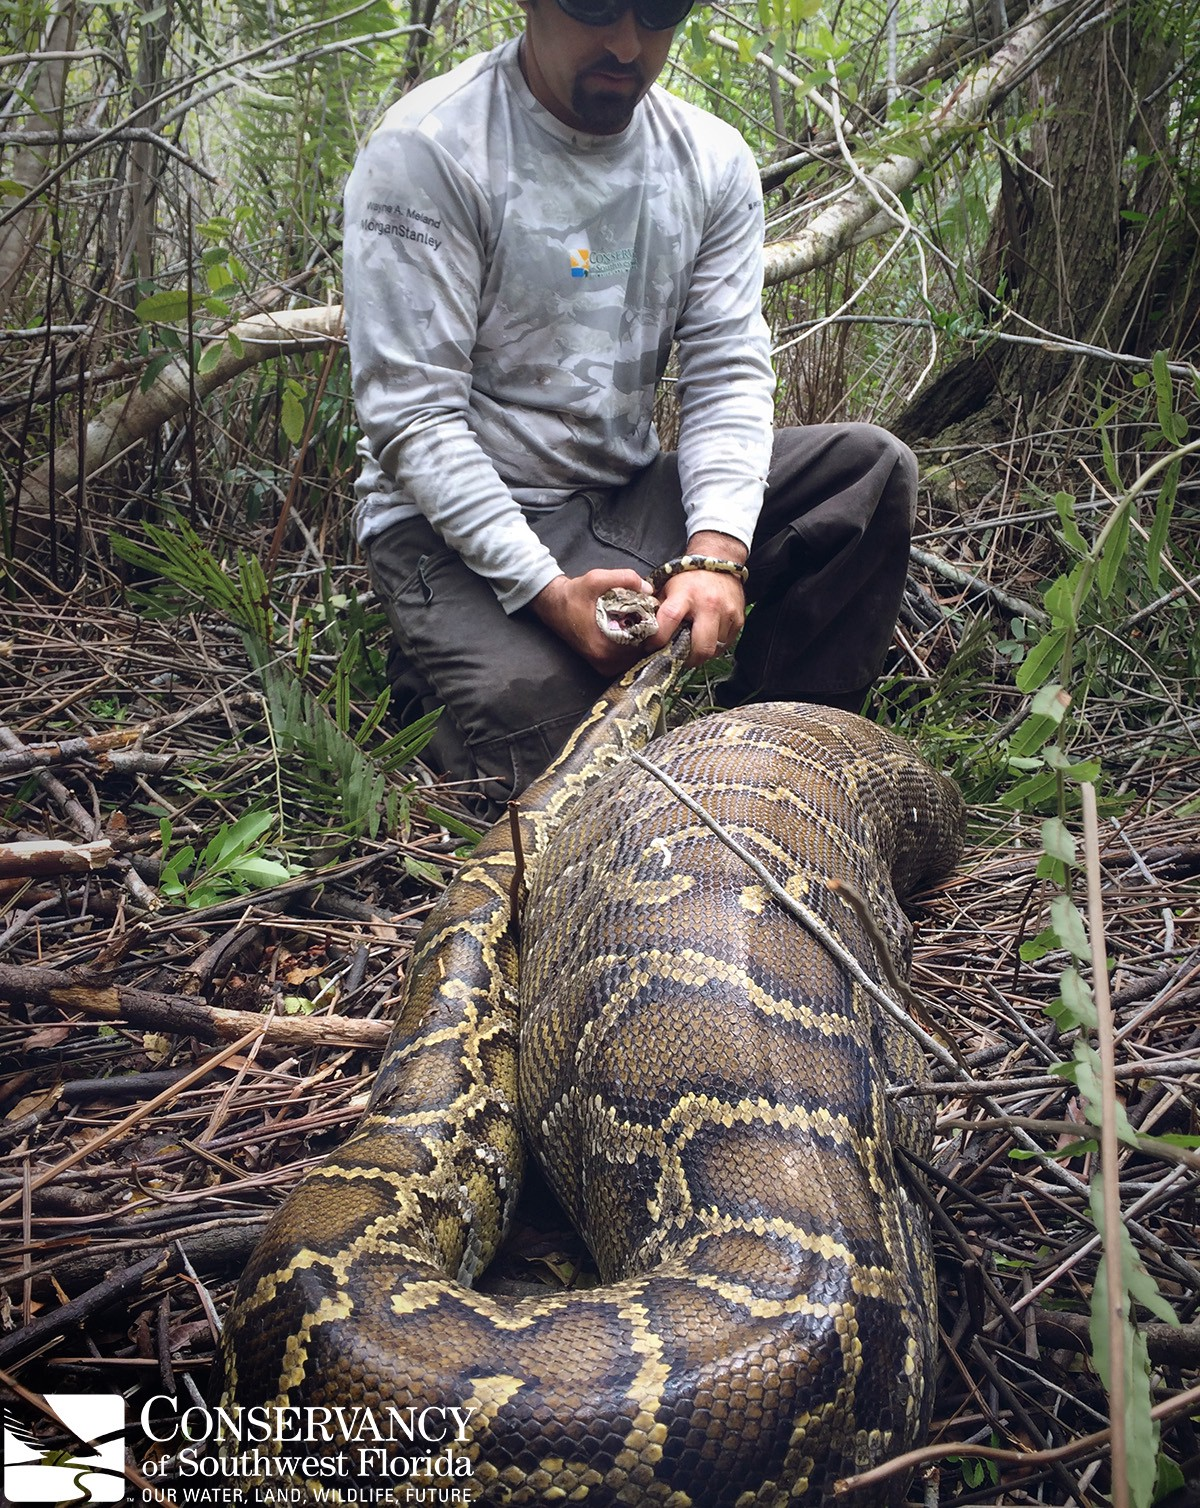 Researchers studying invasive Burmese pythons in Florida came upon something they'd never seen before: an 11-foot-long python had consumed an entire deer that weighed more than the snake itself. (Conservancy of Southwest Florida)